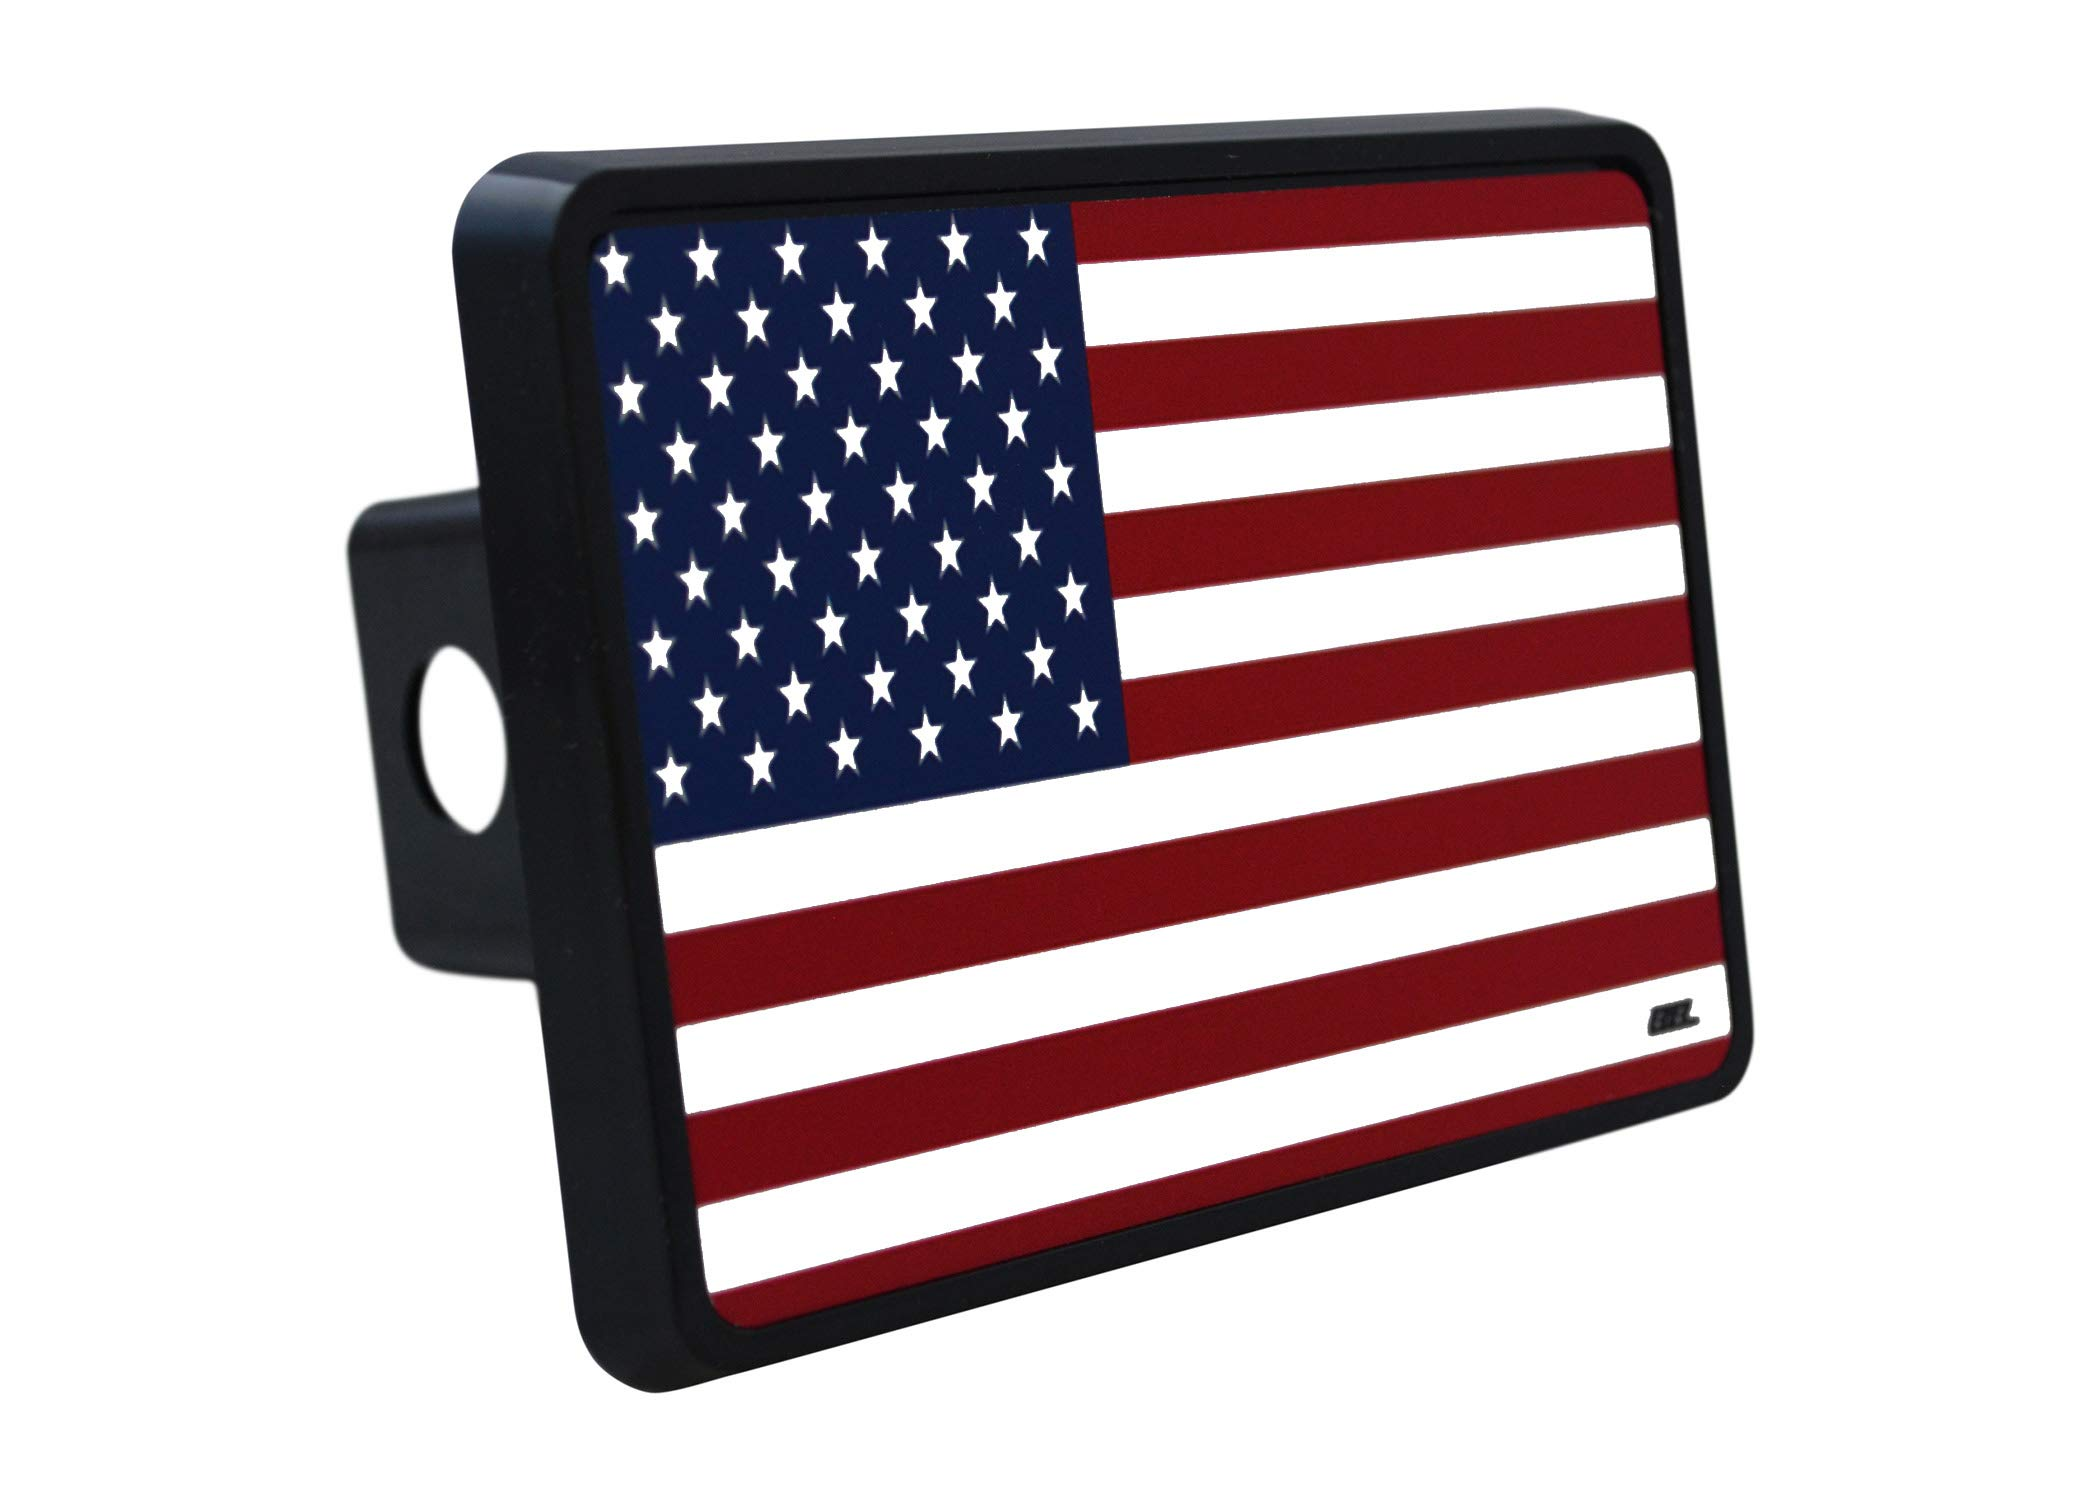 Rogue River Tactical USA American Flag Trailer Hitch Cover Plug US Patriotic Old Glory by Rogue River Tactical